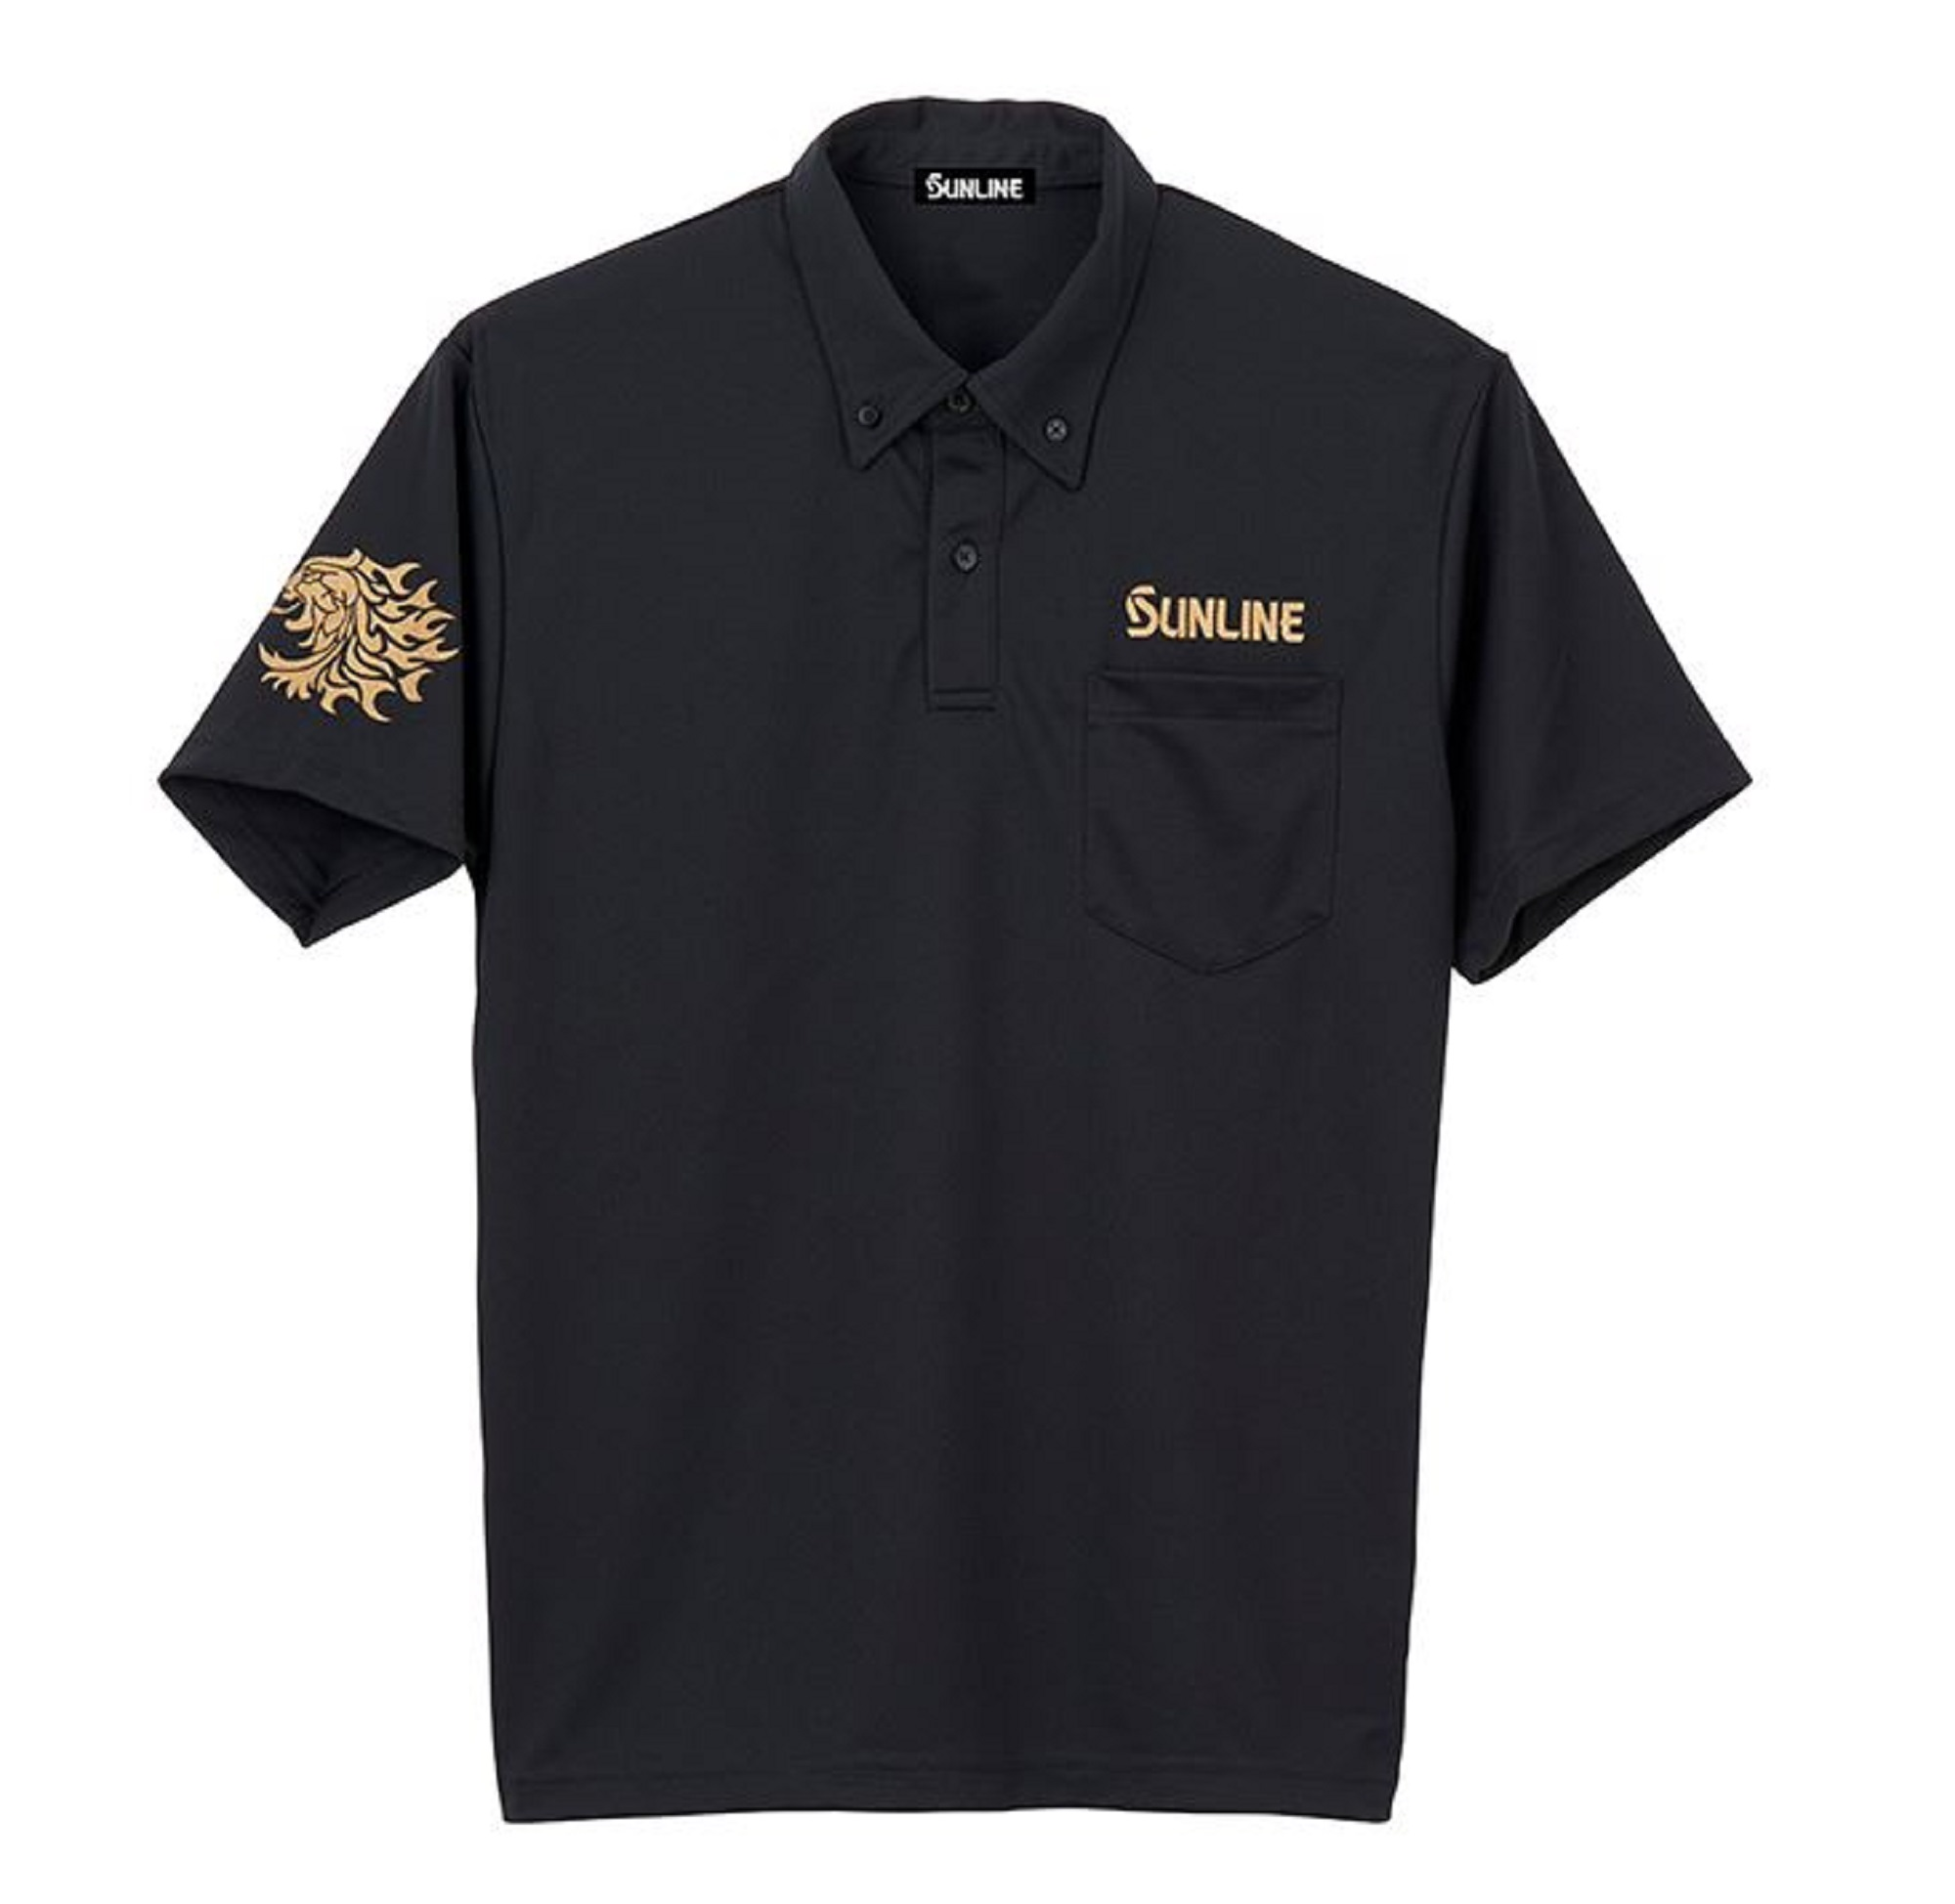 Sunline SUW-15025DP Polo Shirt Dri Fit Short Sleeve Black Size M (3880)